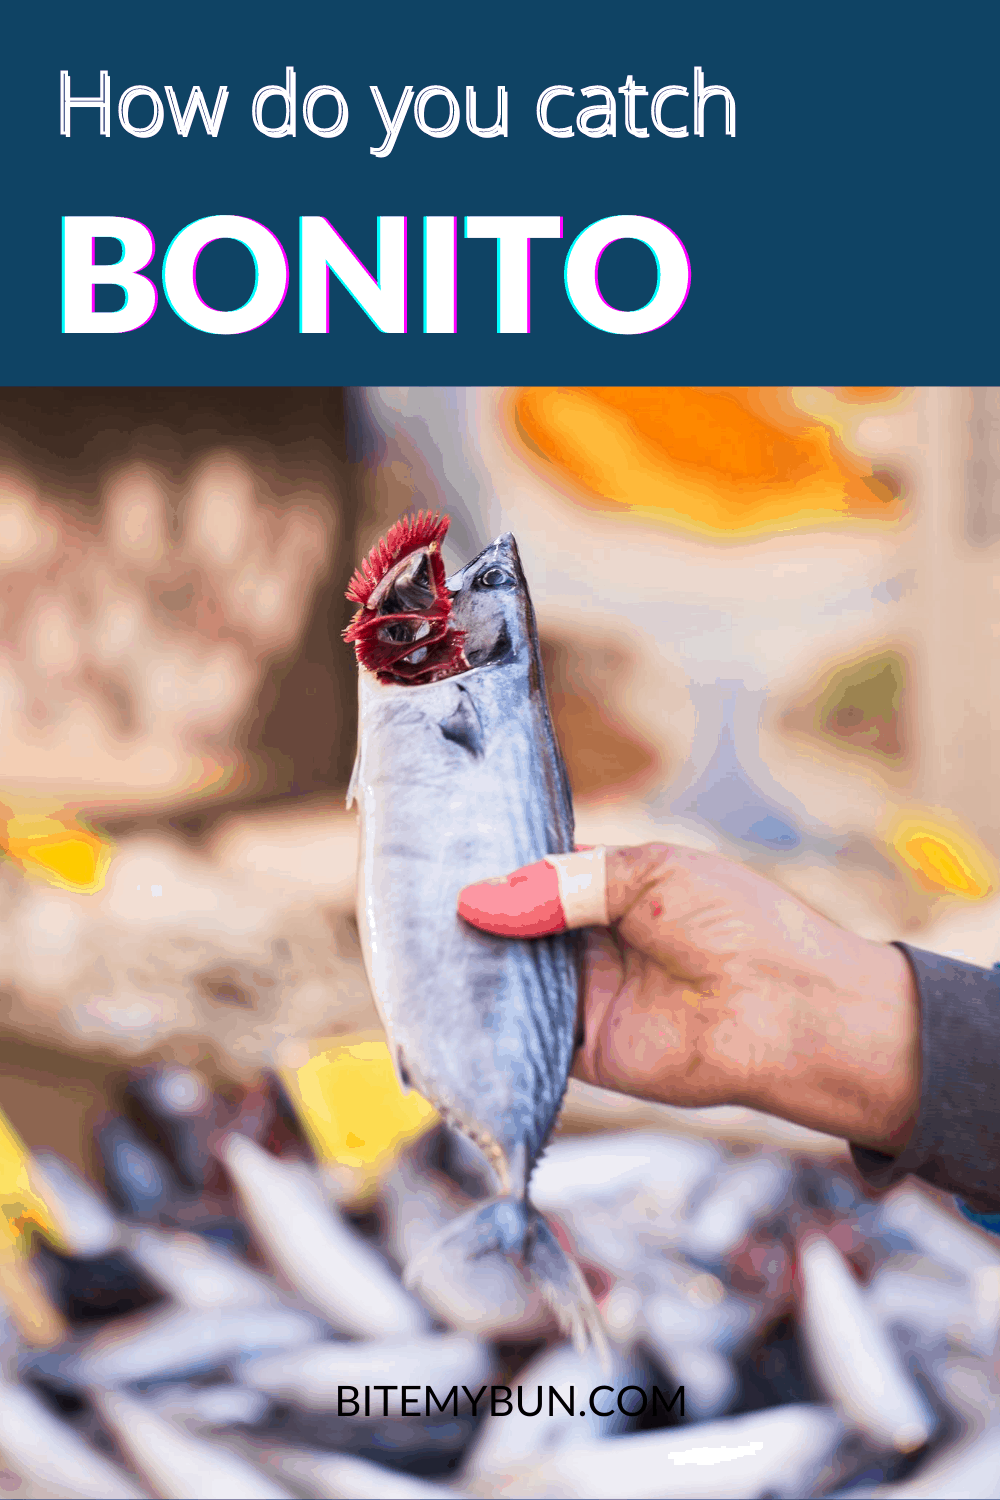 How to catch bonito